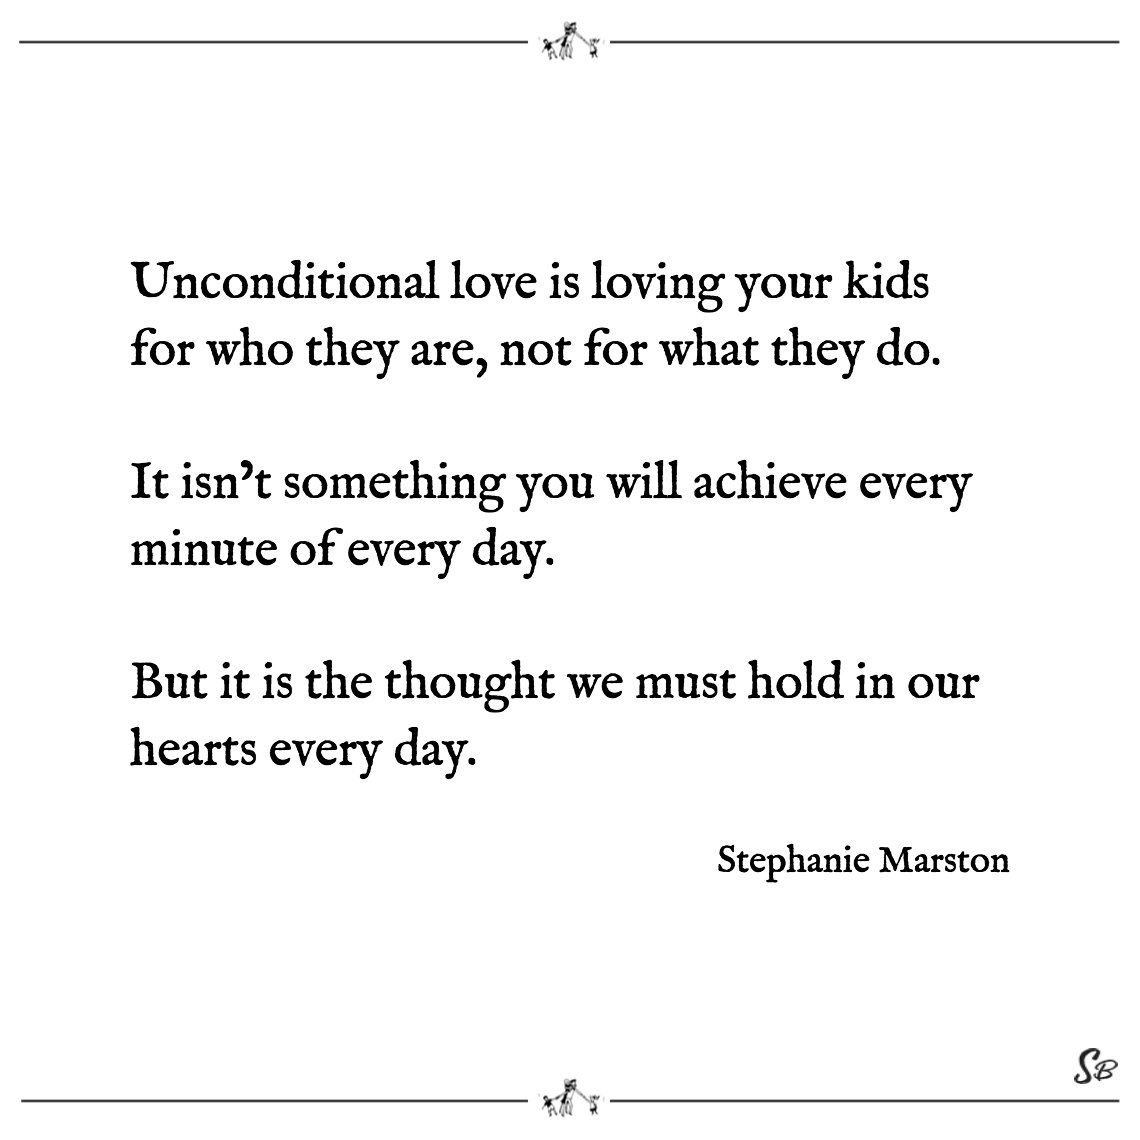 Unconditional love is loving your kids for who they are not for what they do